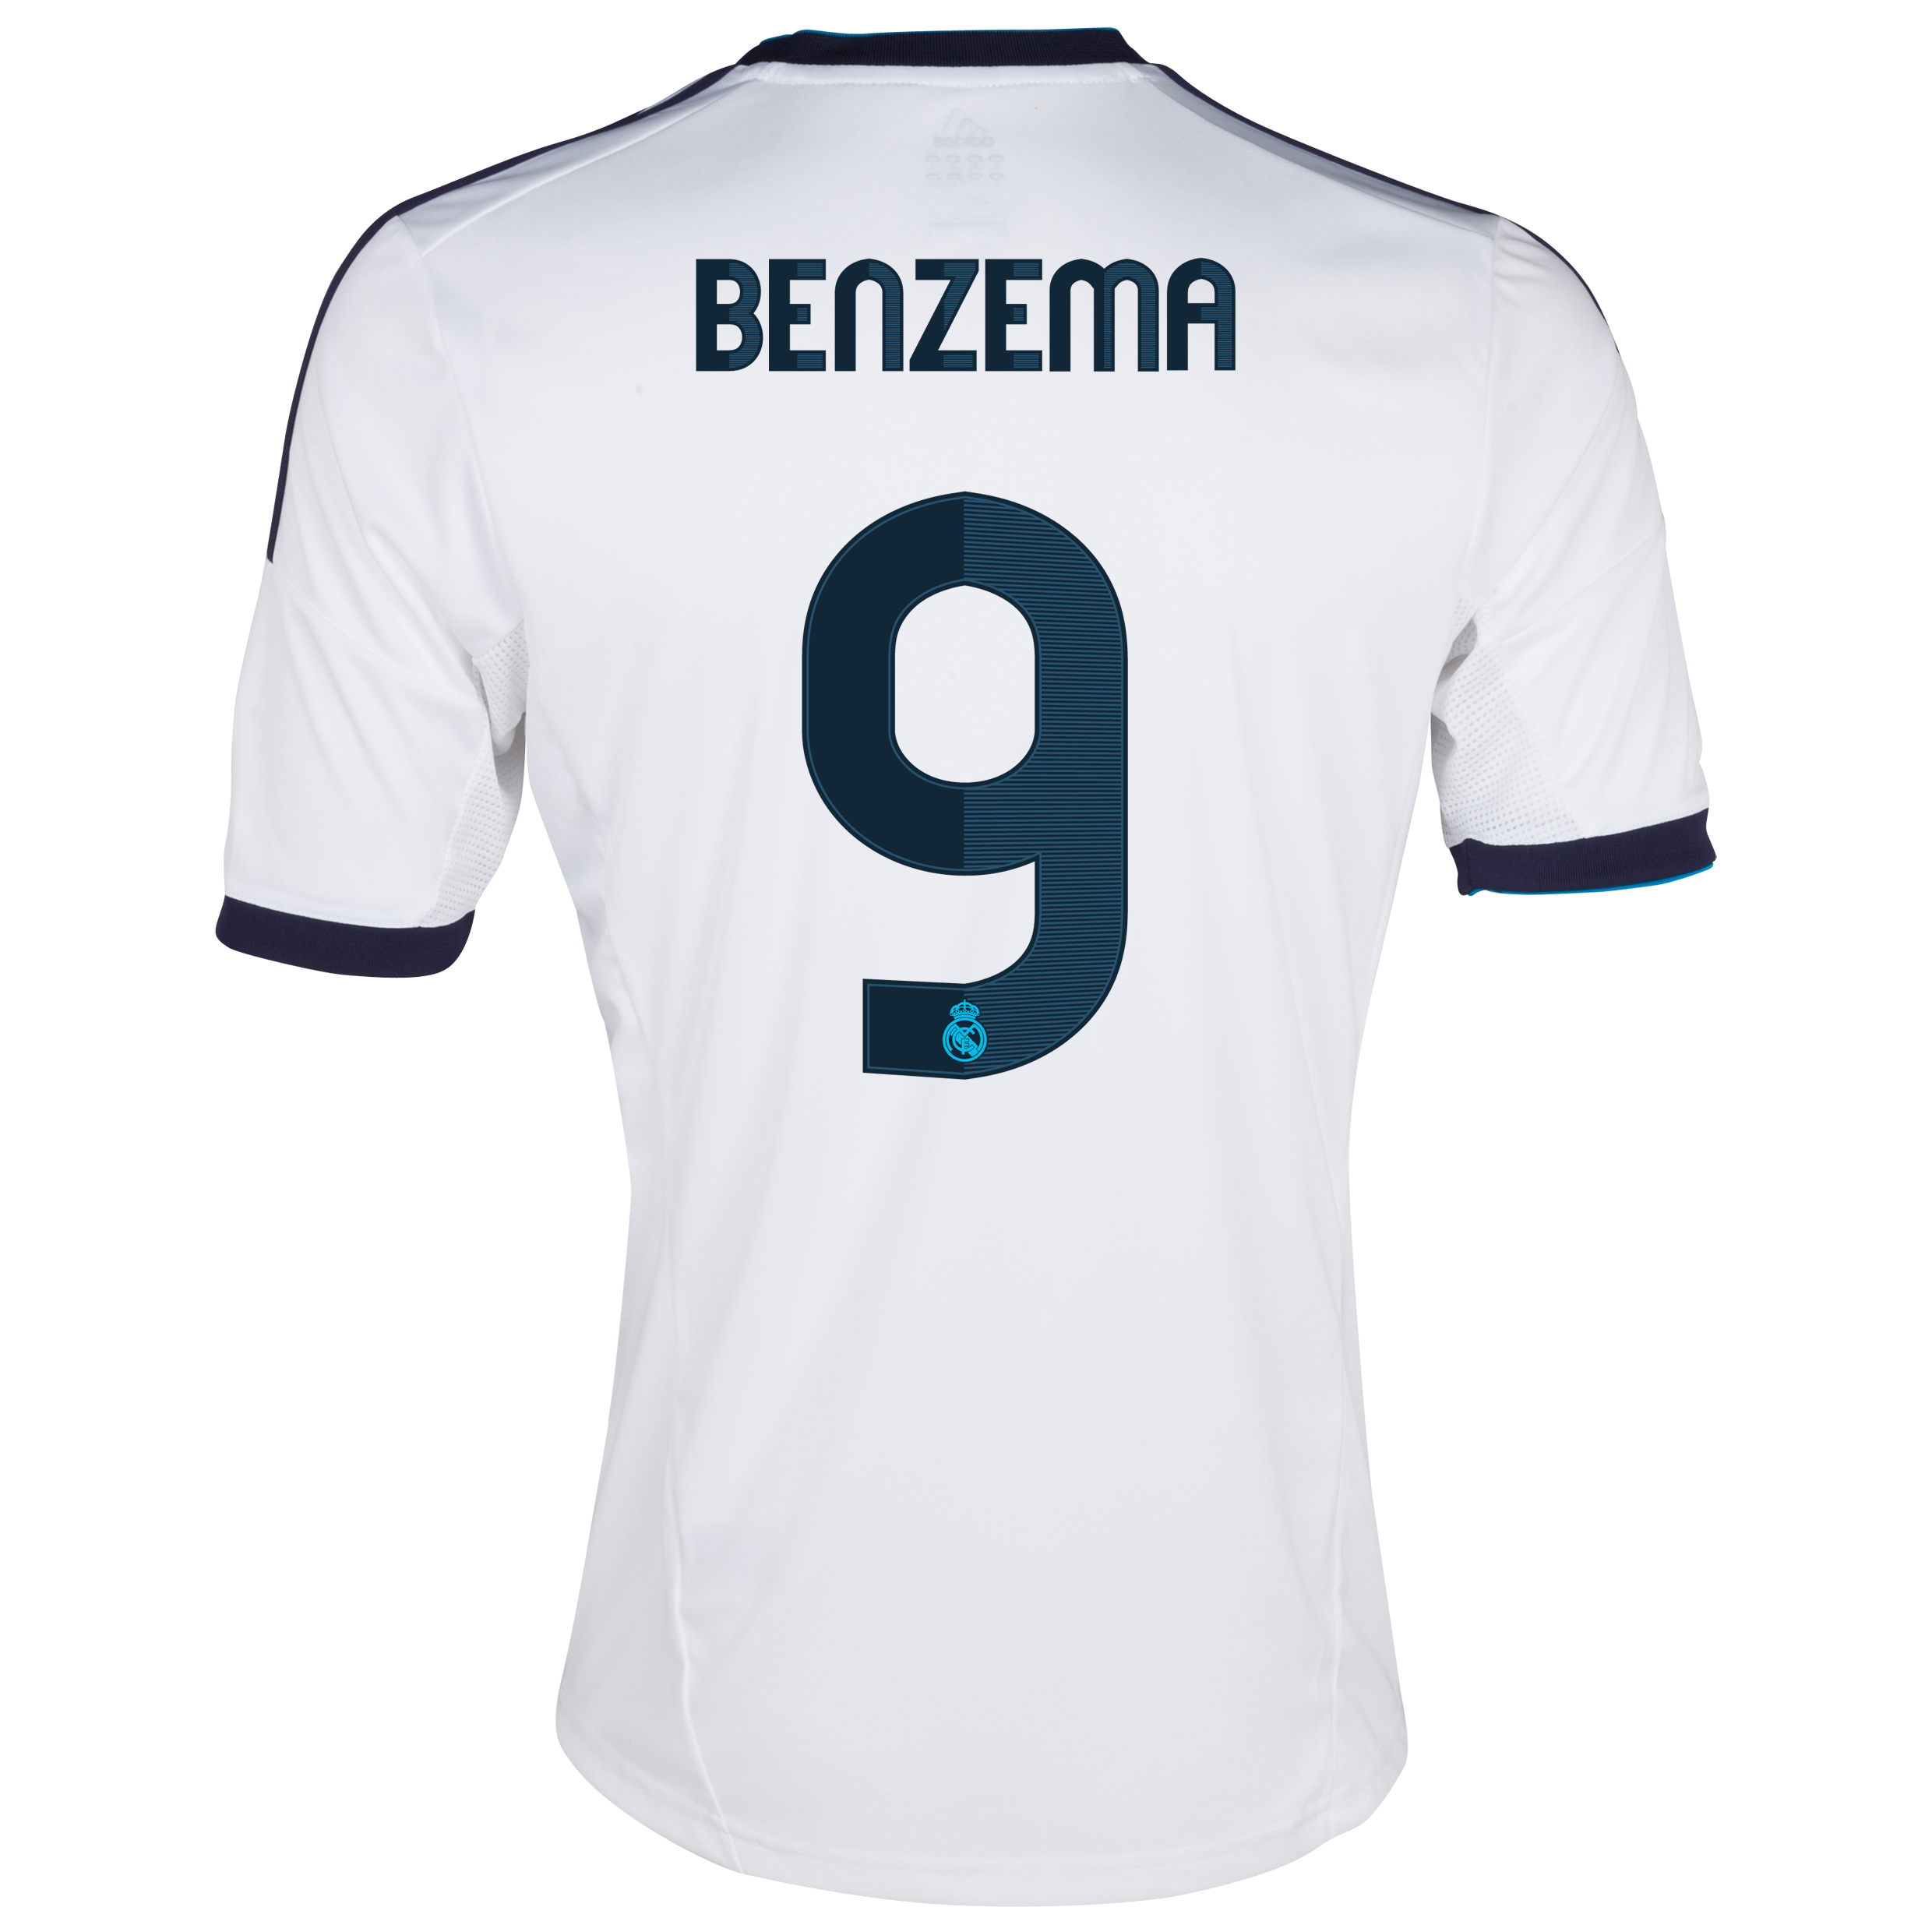 Camiseta 1 equipacin del Real Madrid 2012/13 con Benzema 9